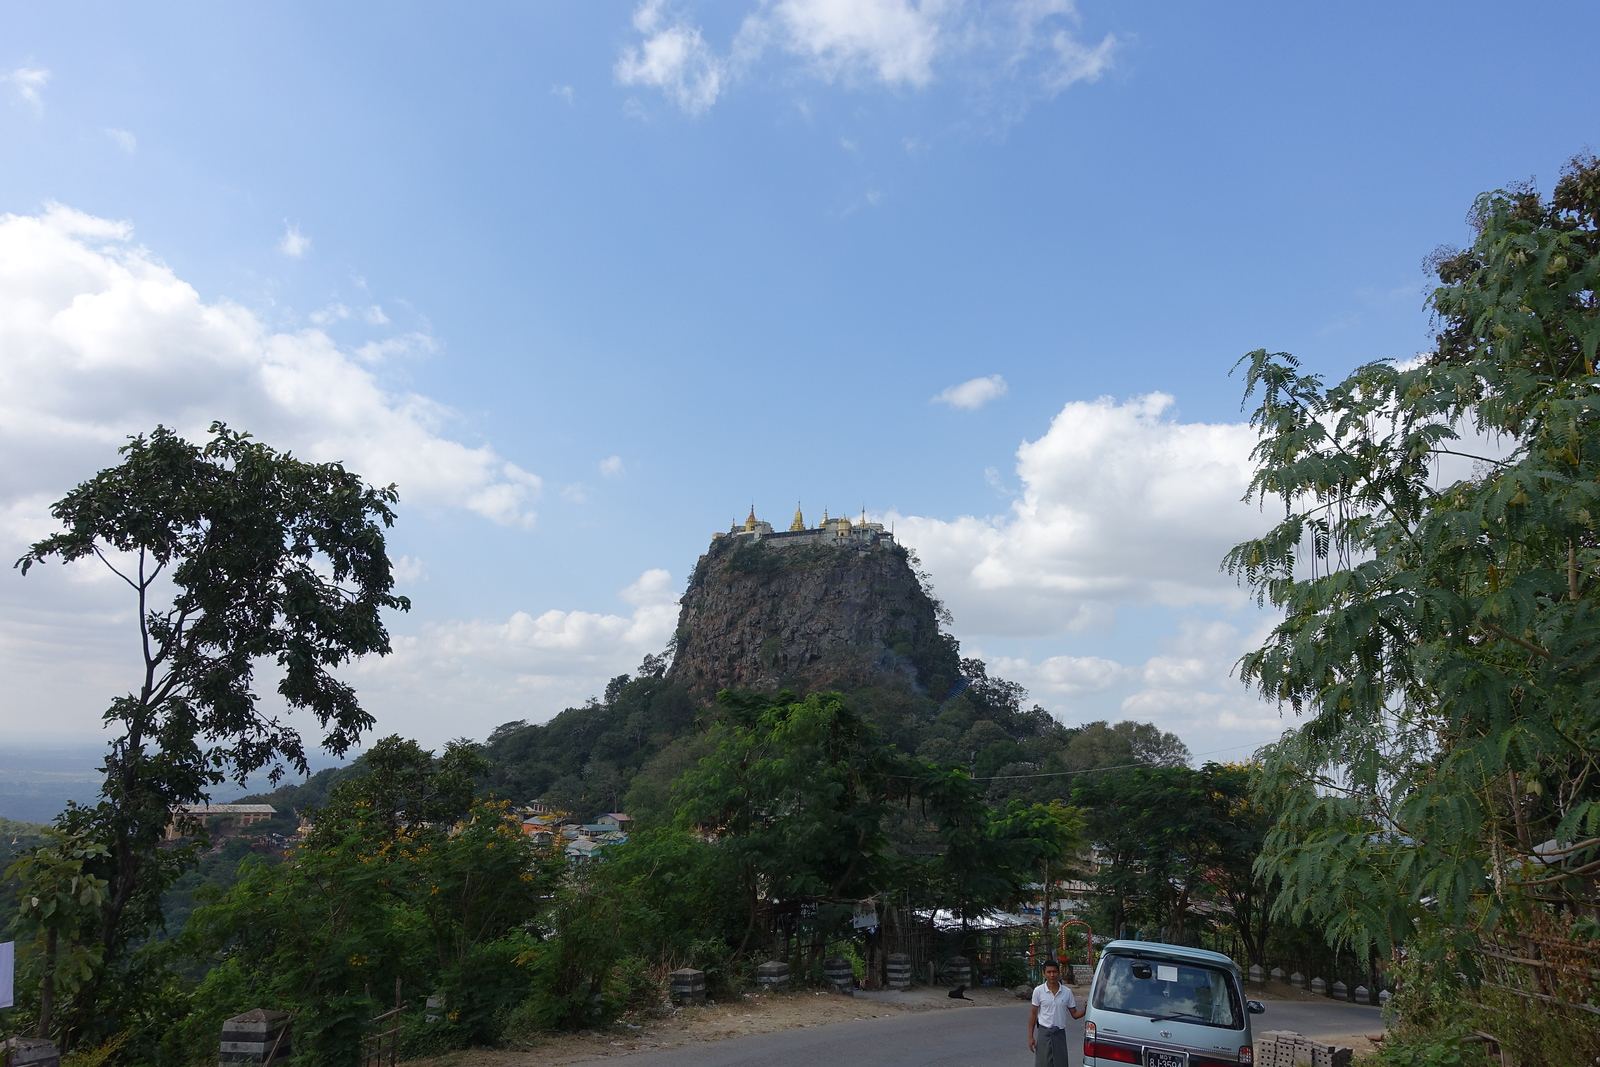 Bagan – Mount Popa (and Monkeys!)